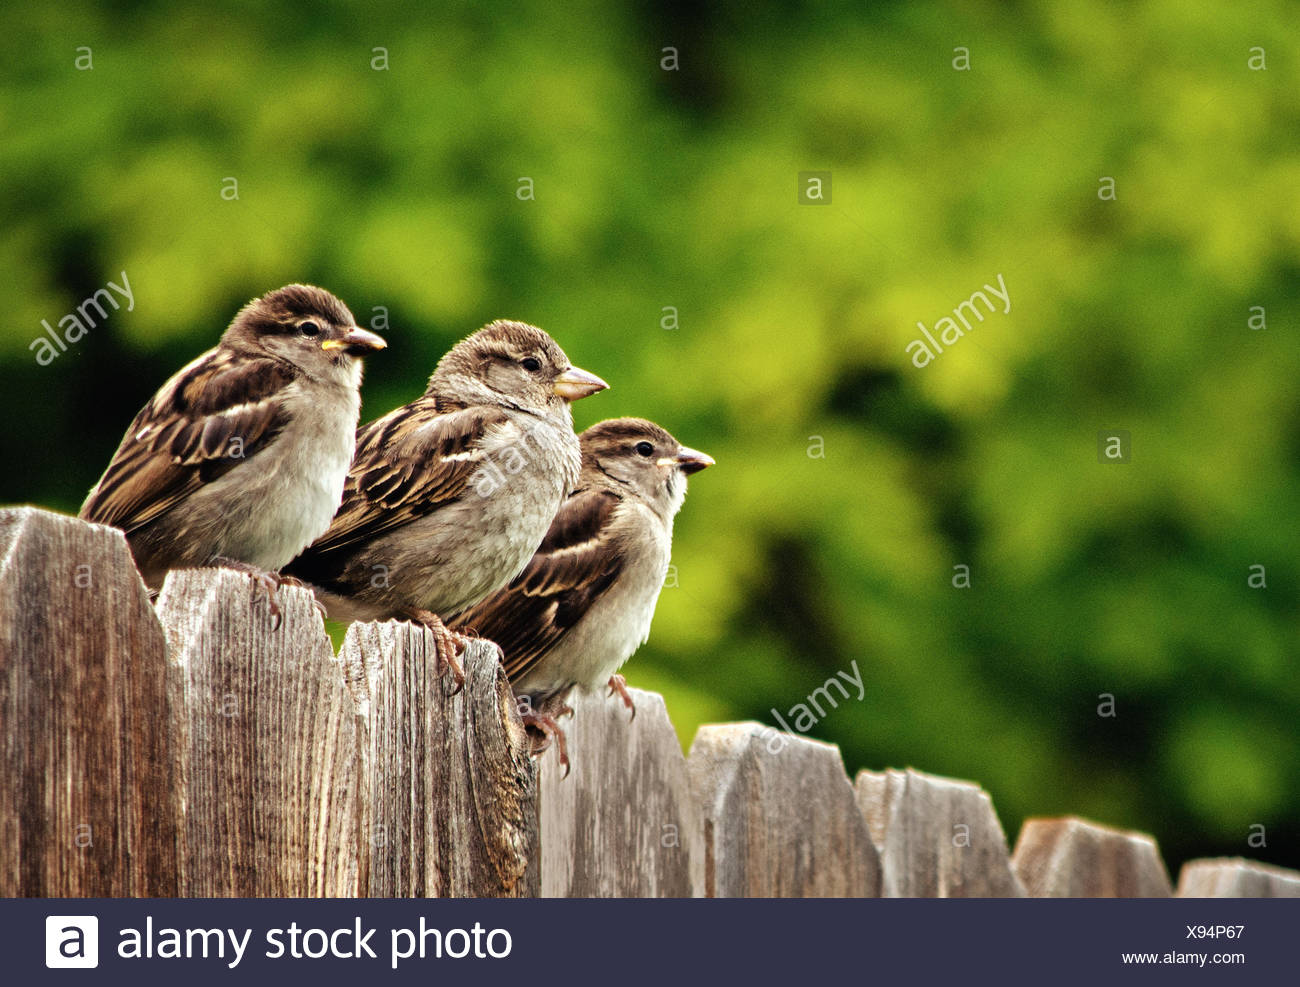 Three house sparrows perching on fence - Stock Image